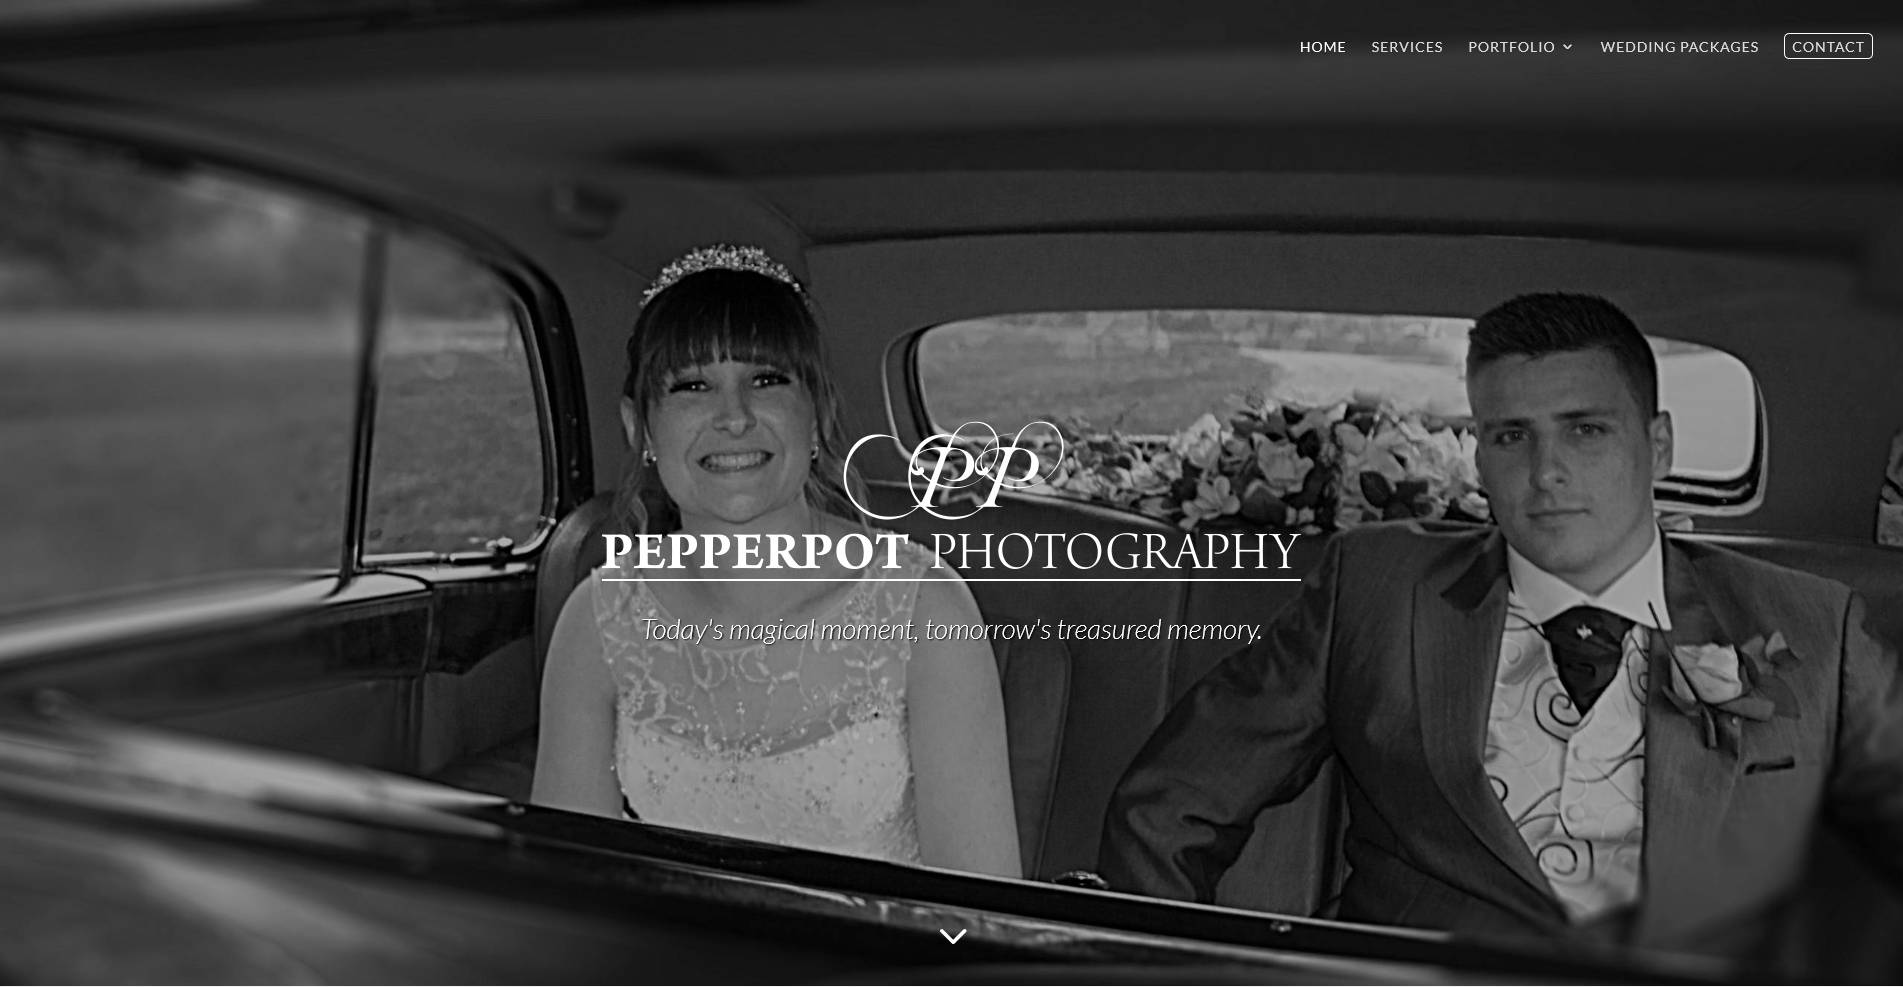 Pepperpot Photogrphy